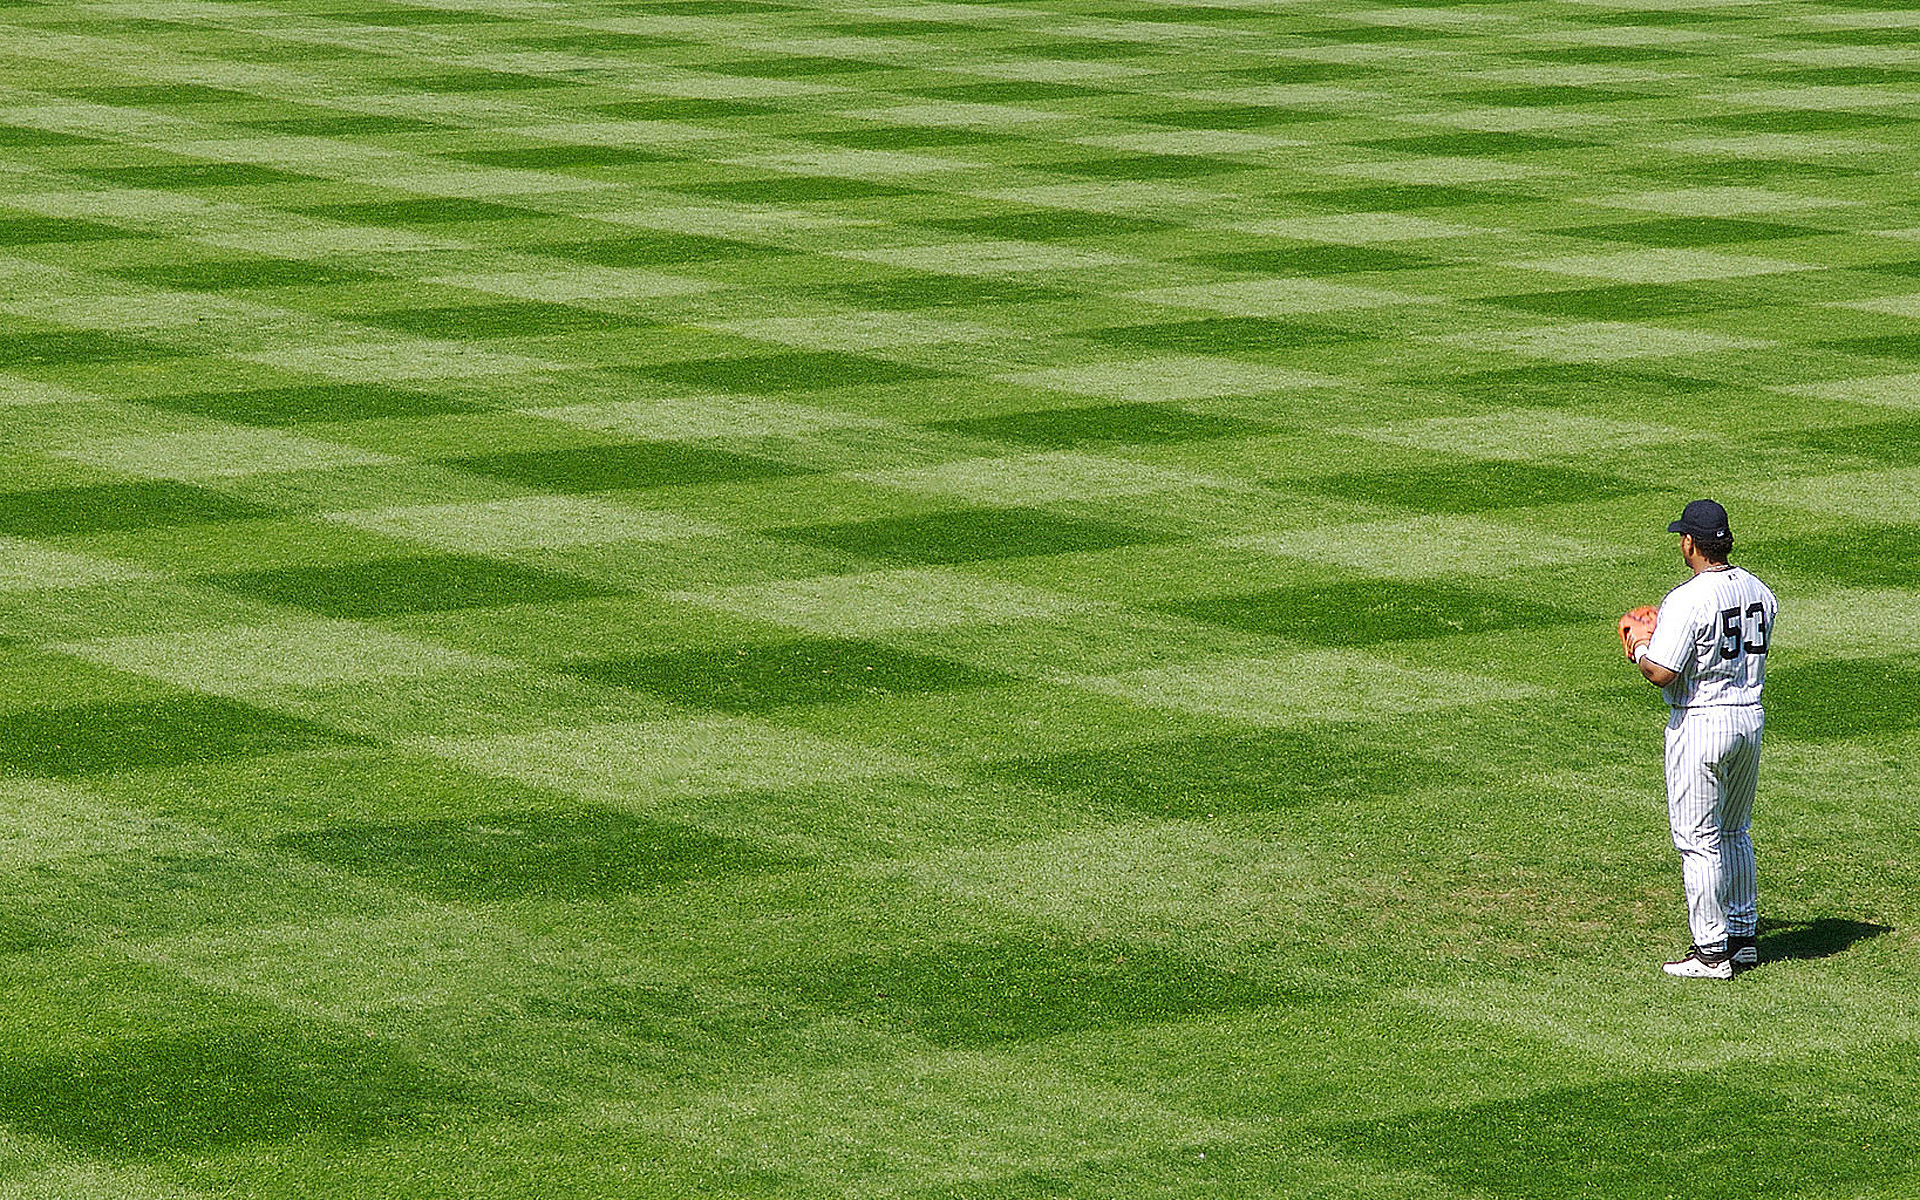 baseball field grass wallpaper sports t56iodwvfti aaaaaaaavsi 1920x1200